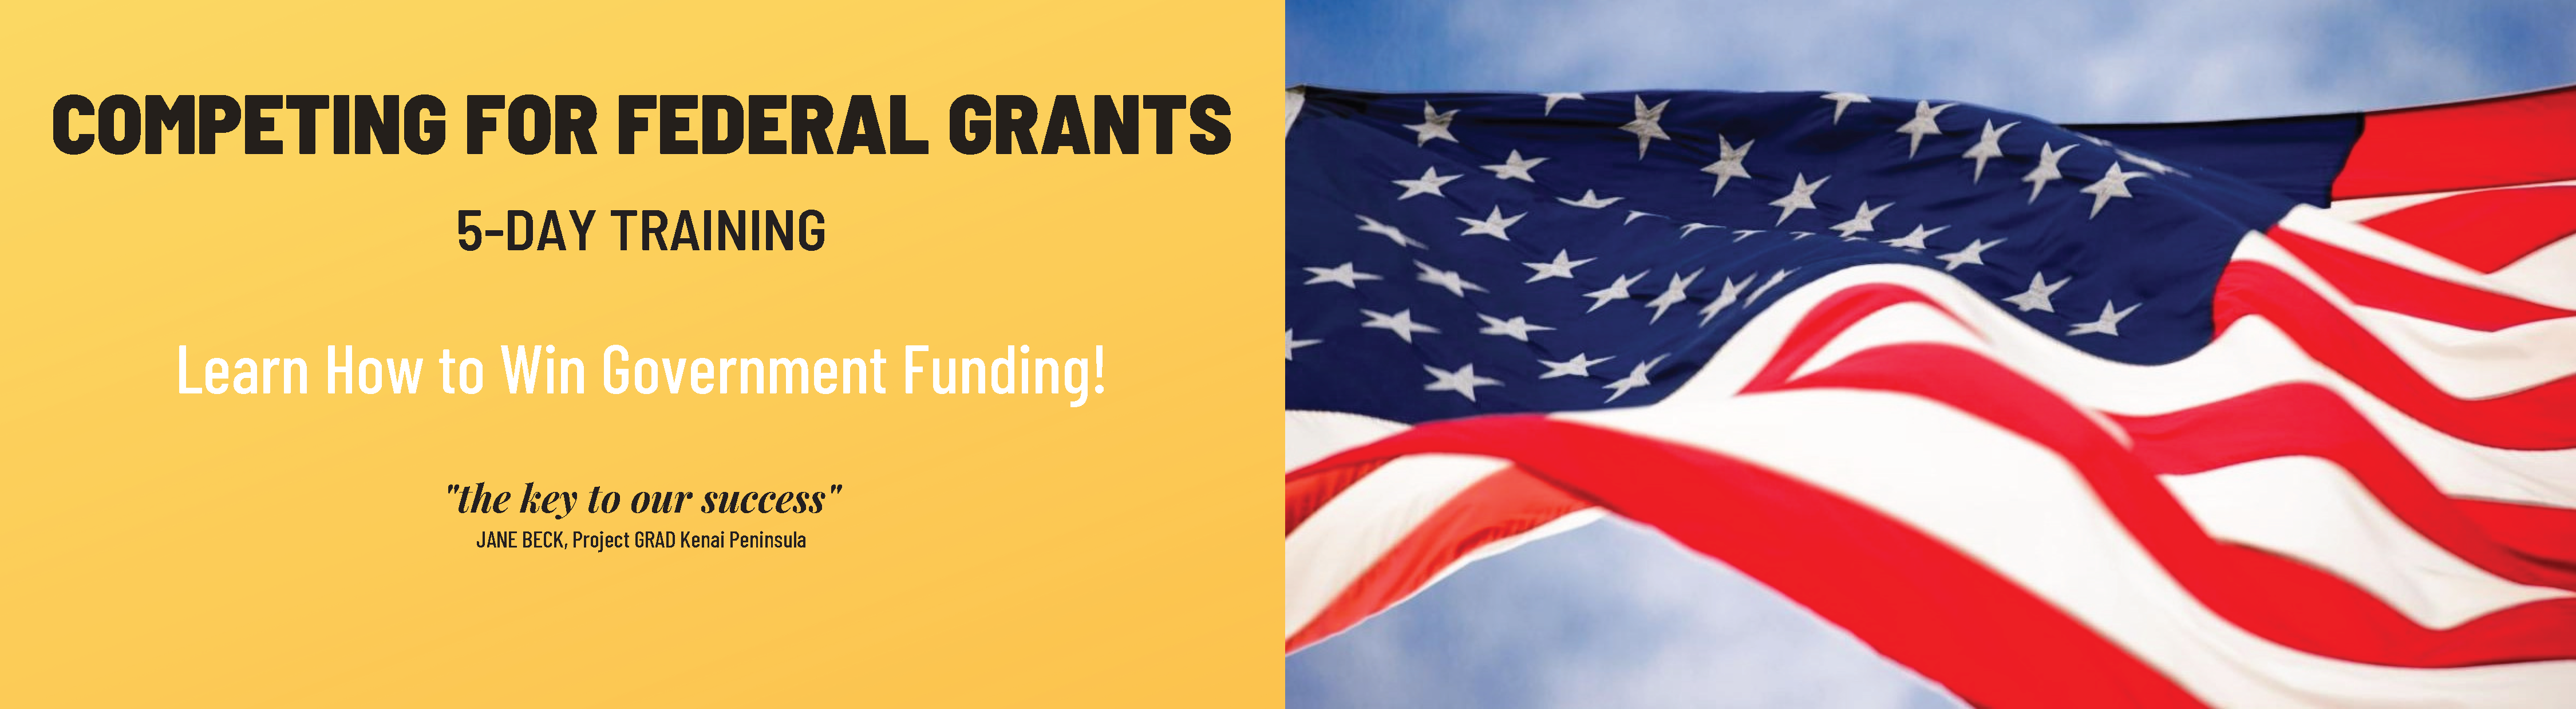 """Competing for Federal Grants: 5-Day Training. Learn how to win government funding! """"The key to our success."""" Jane Beck, Project GRAD Kenai Peninsula"""